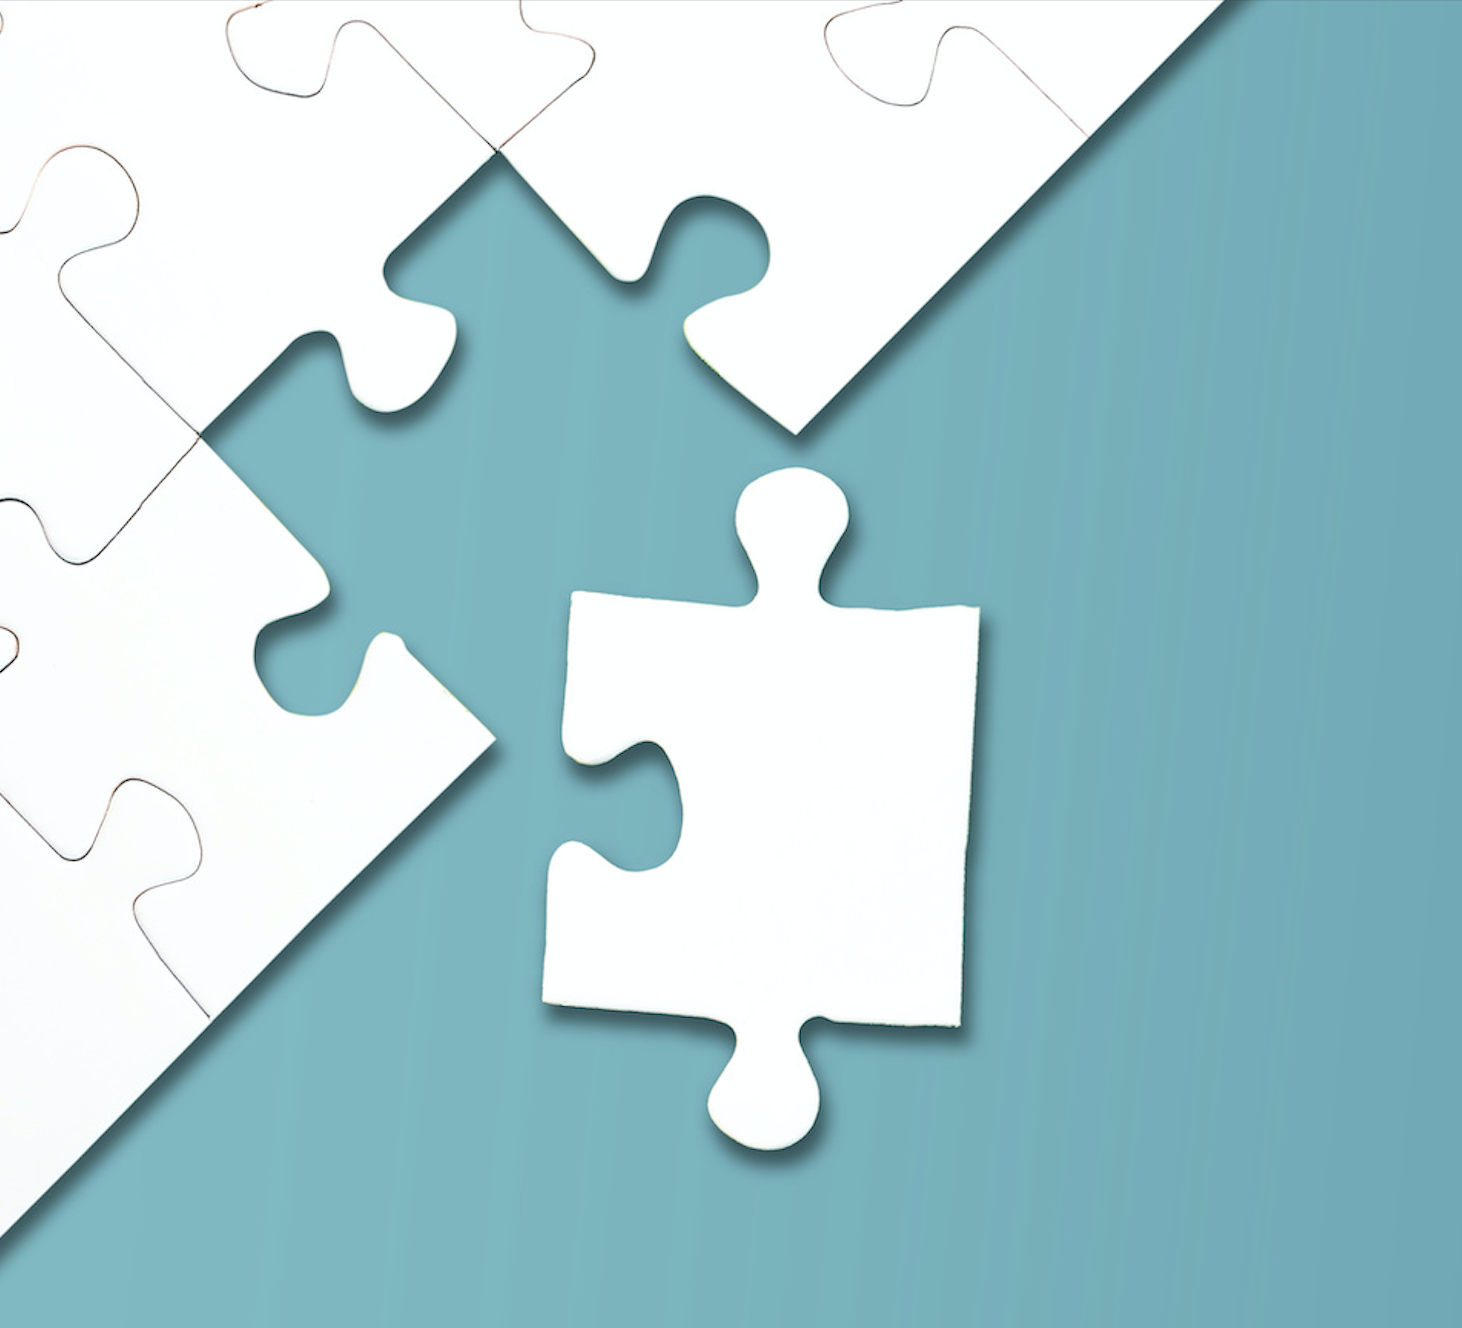 A white jigsaw puzzle against a blue background with one piece missing, but nearby